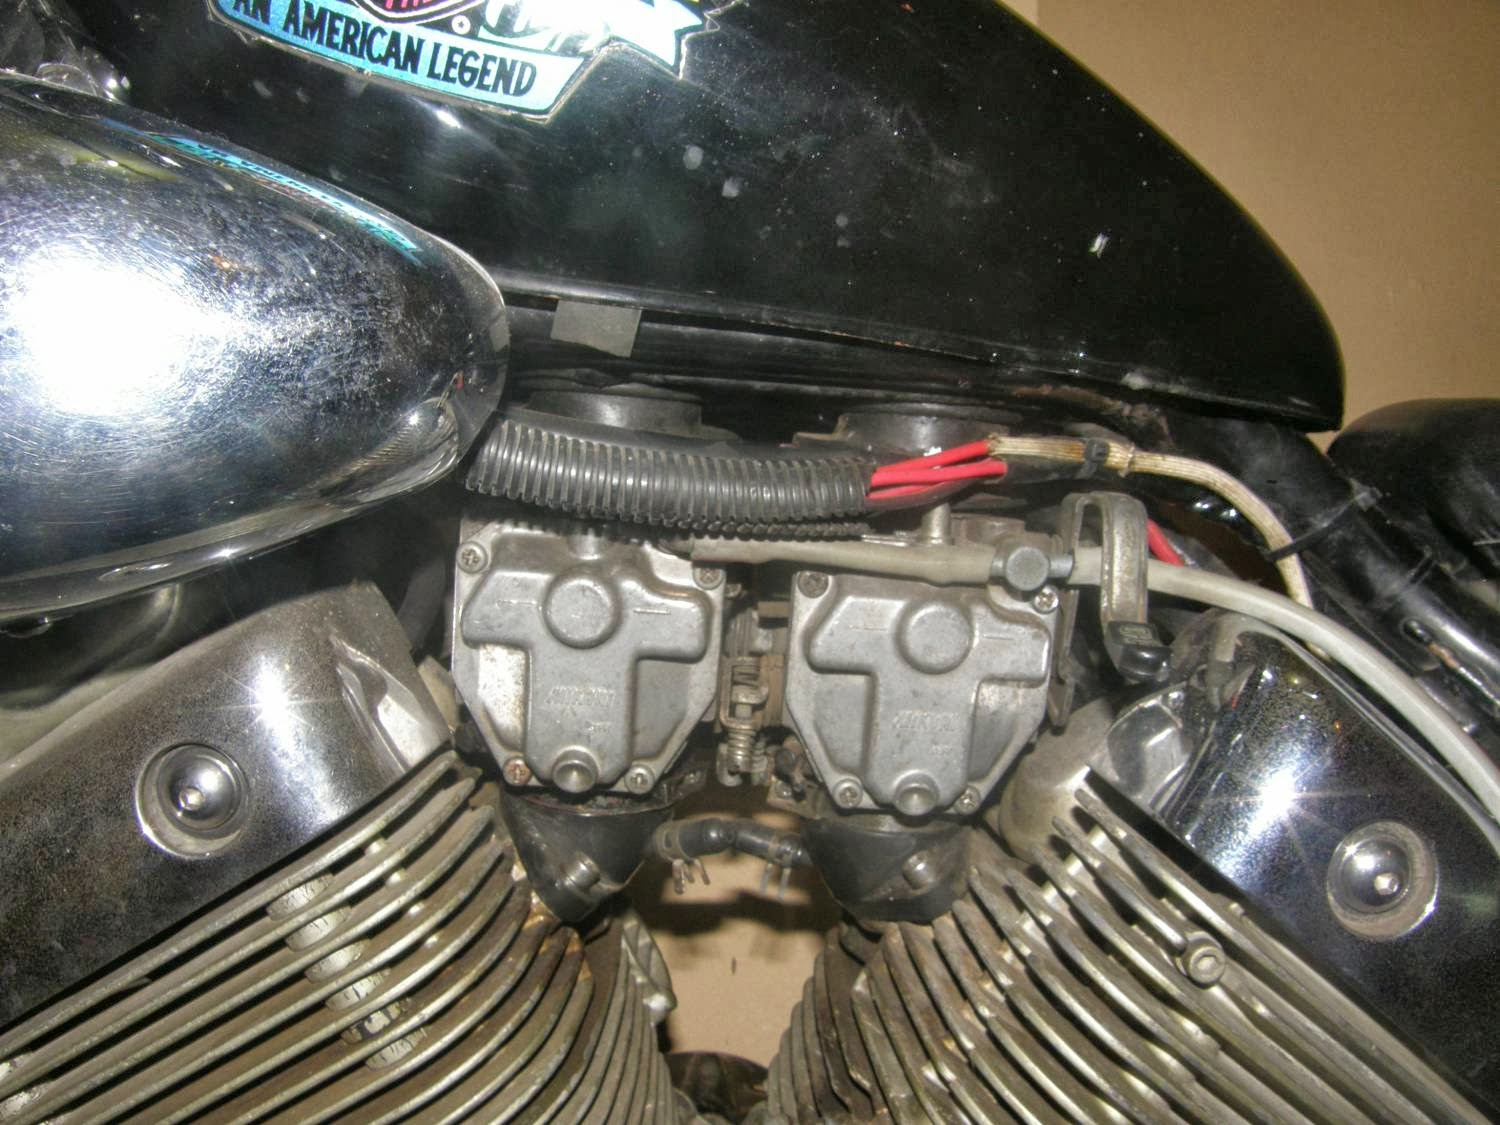 Virago Xv400 Parts Pics And Contacts Yamaha 535 Xv500k Color Wiring Schematic This Is The Model With Fuel Tank Under Seat A False On Top That Serves As Air Filter